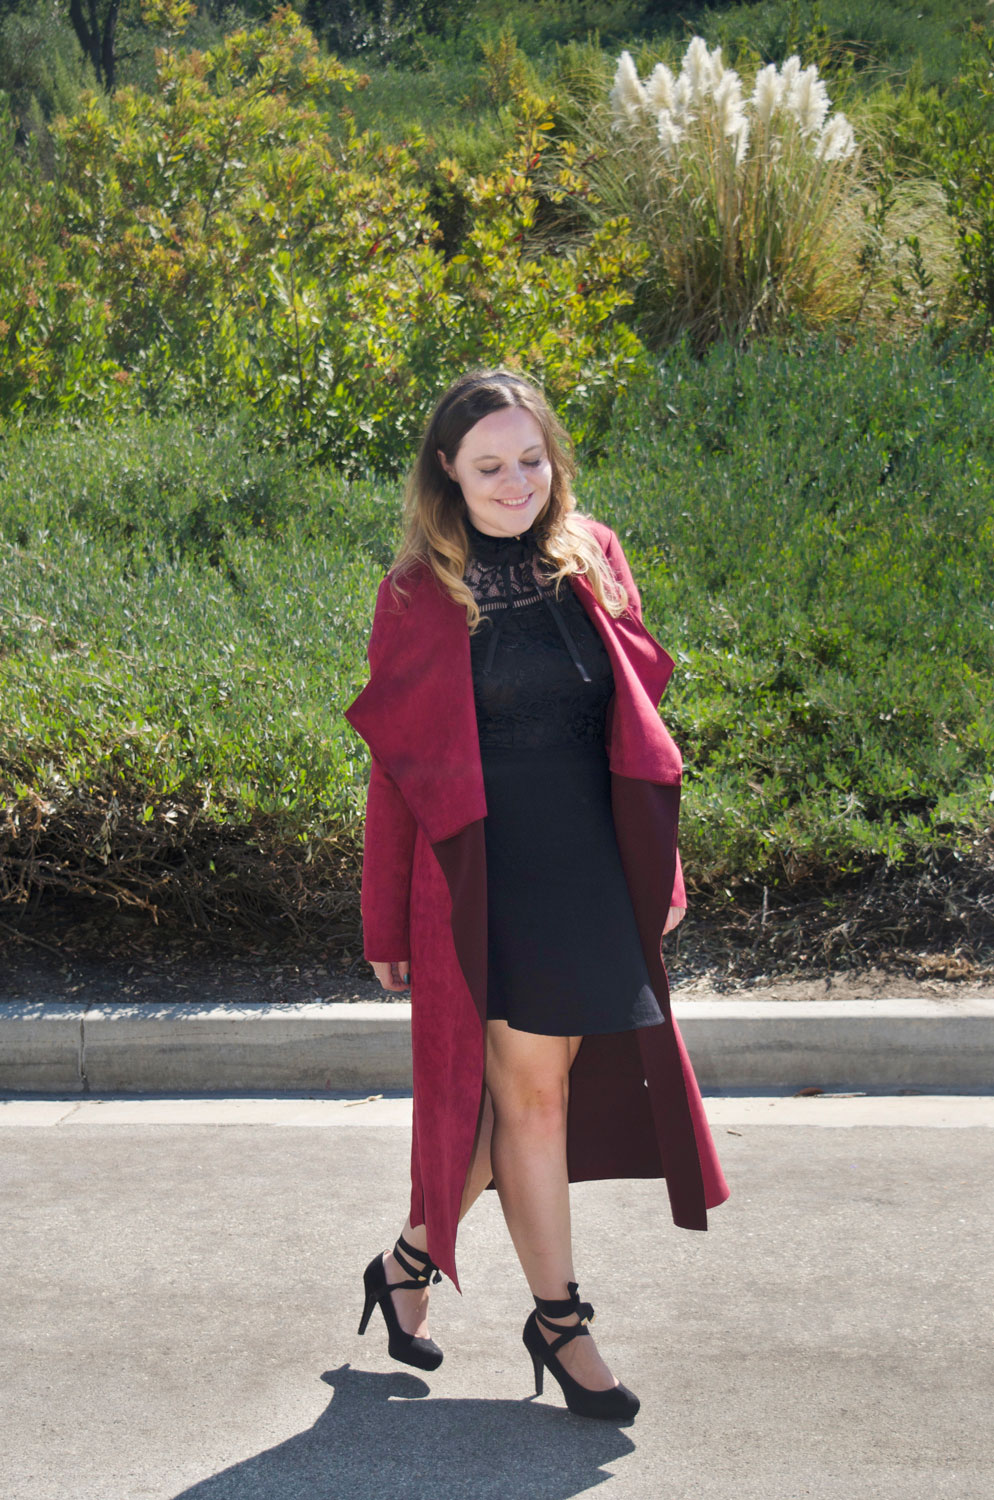 Draped and Reddy - Stylist Picks